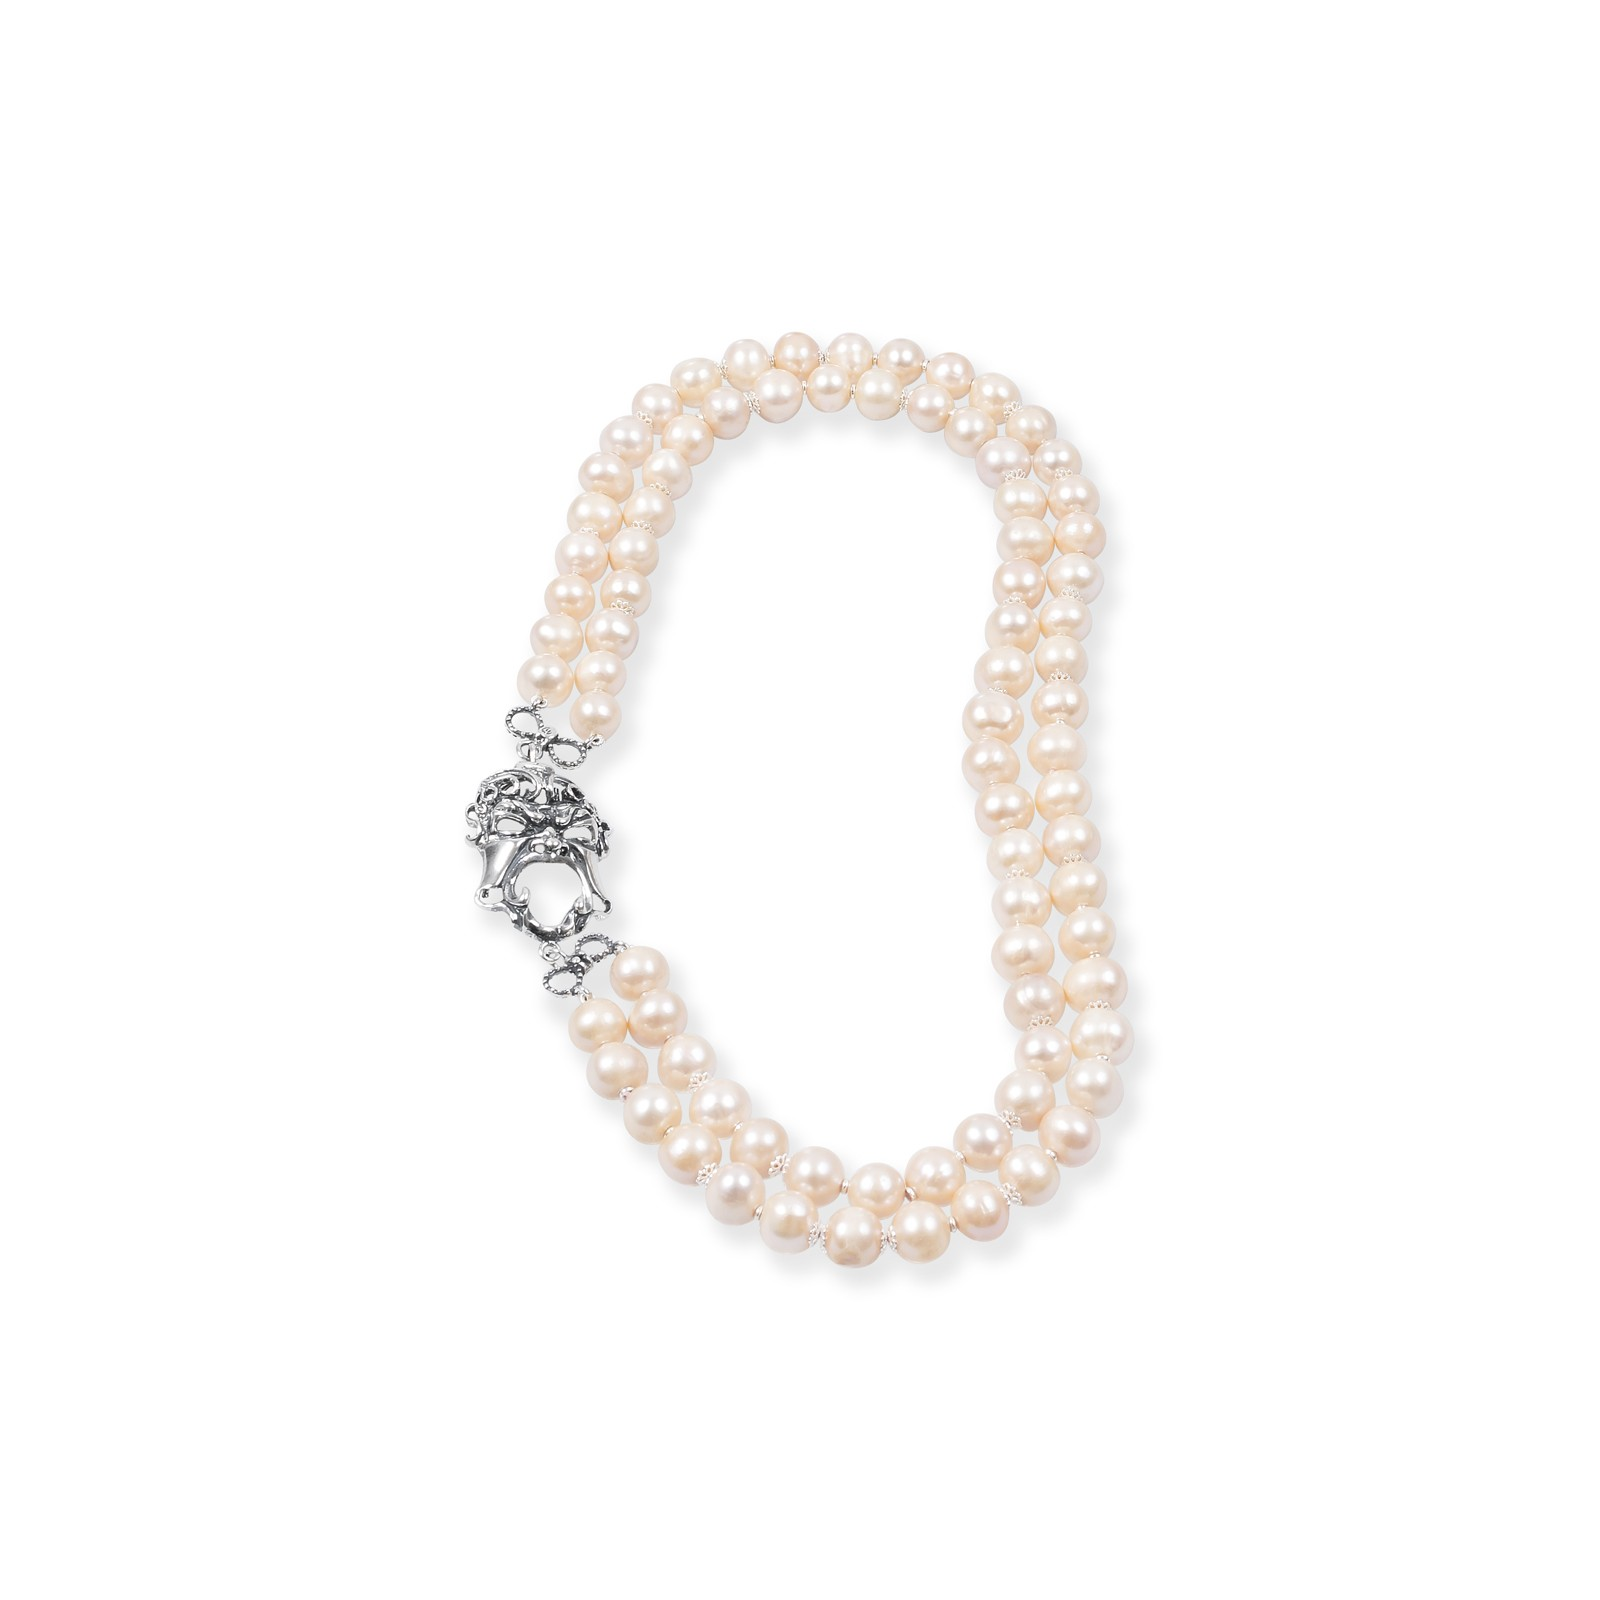 Perls and Mask Necklace (27555)